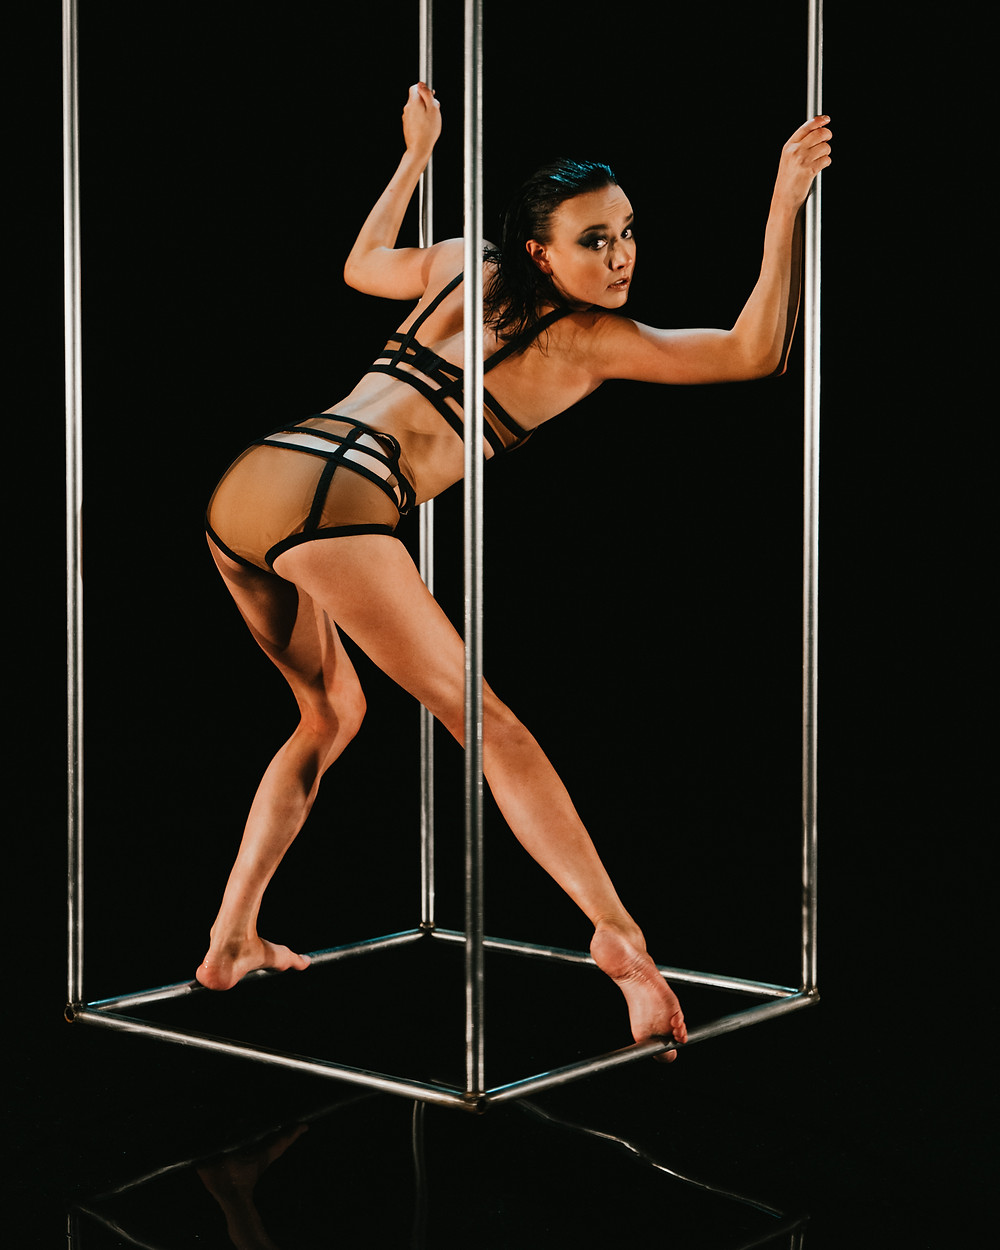 circus performer hanging in silver box captured by Las Vegas photographer hayway films